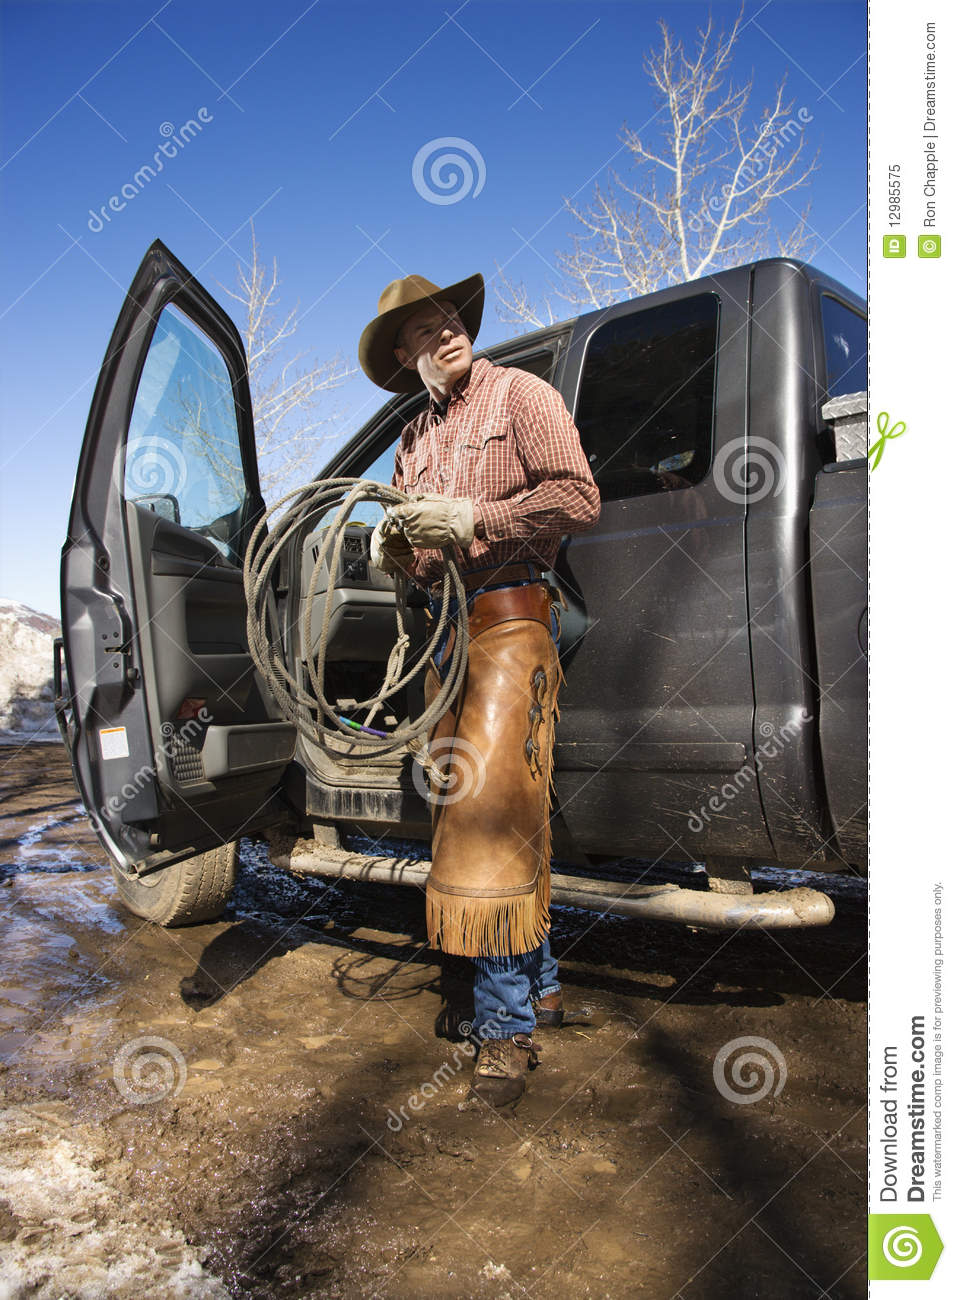 6 Door Truck >> Man Wearing Cowboy Hat With Lariat And Truck Stock Image - Image: 12985575